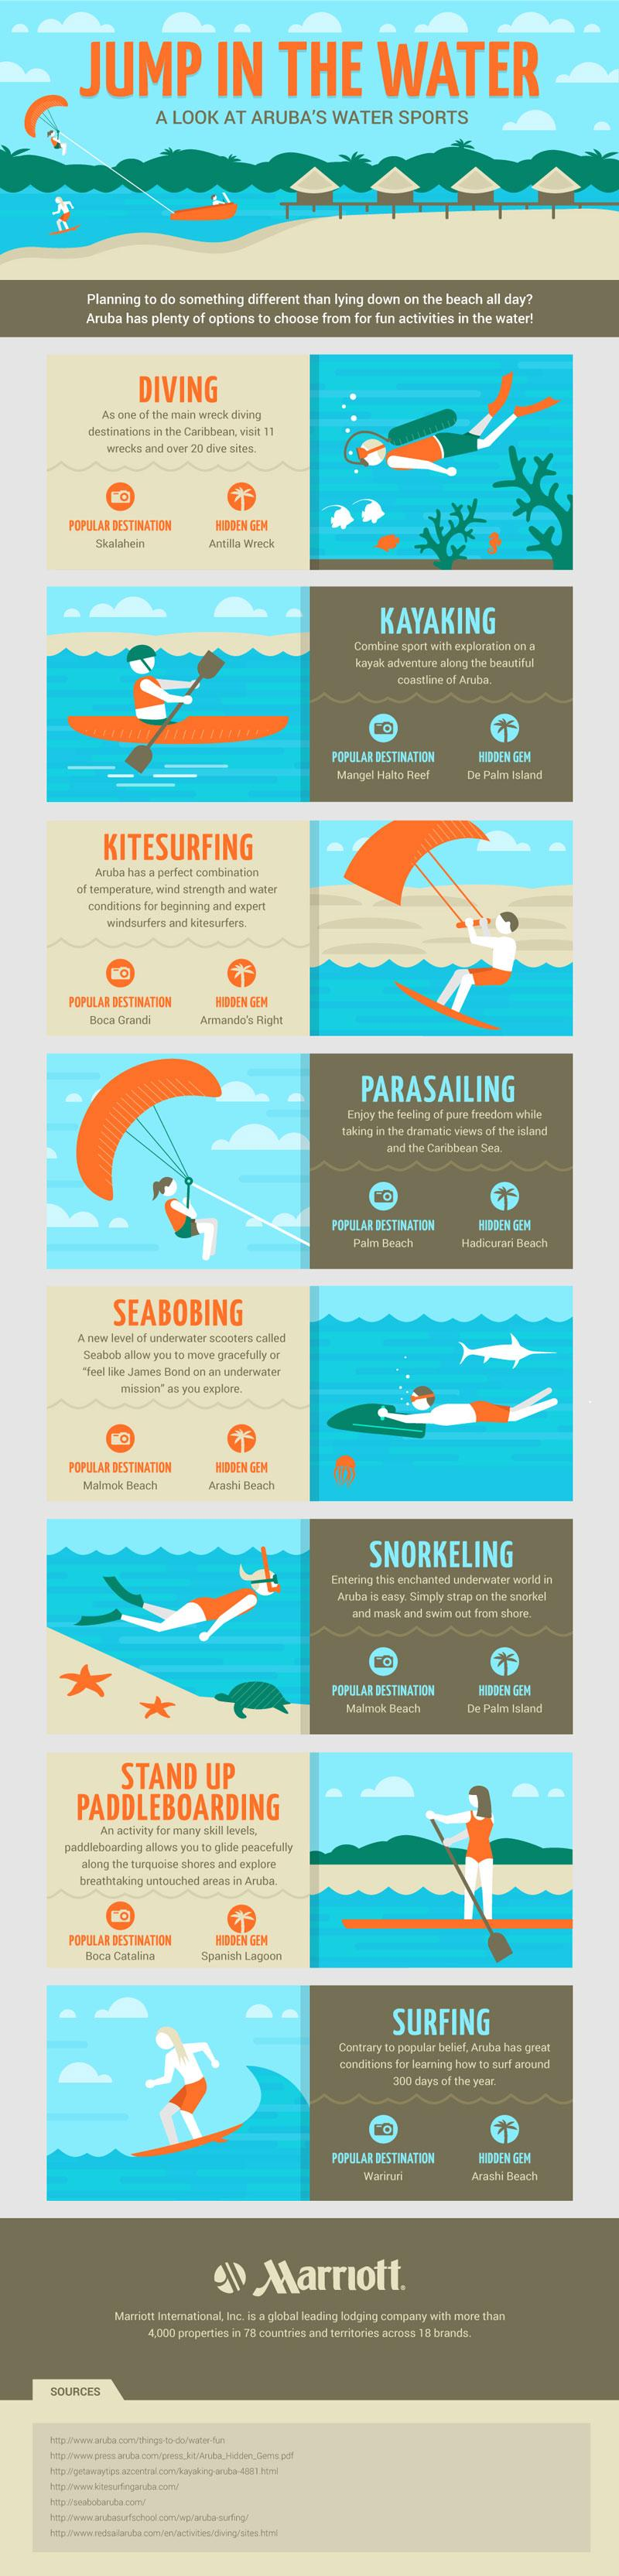 info2 - 6 Most Common Water Activities You Must Try